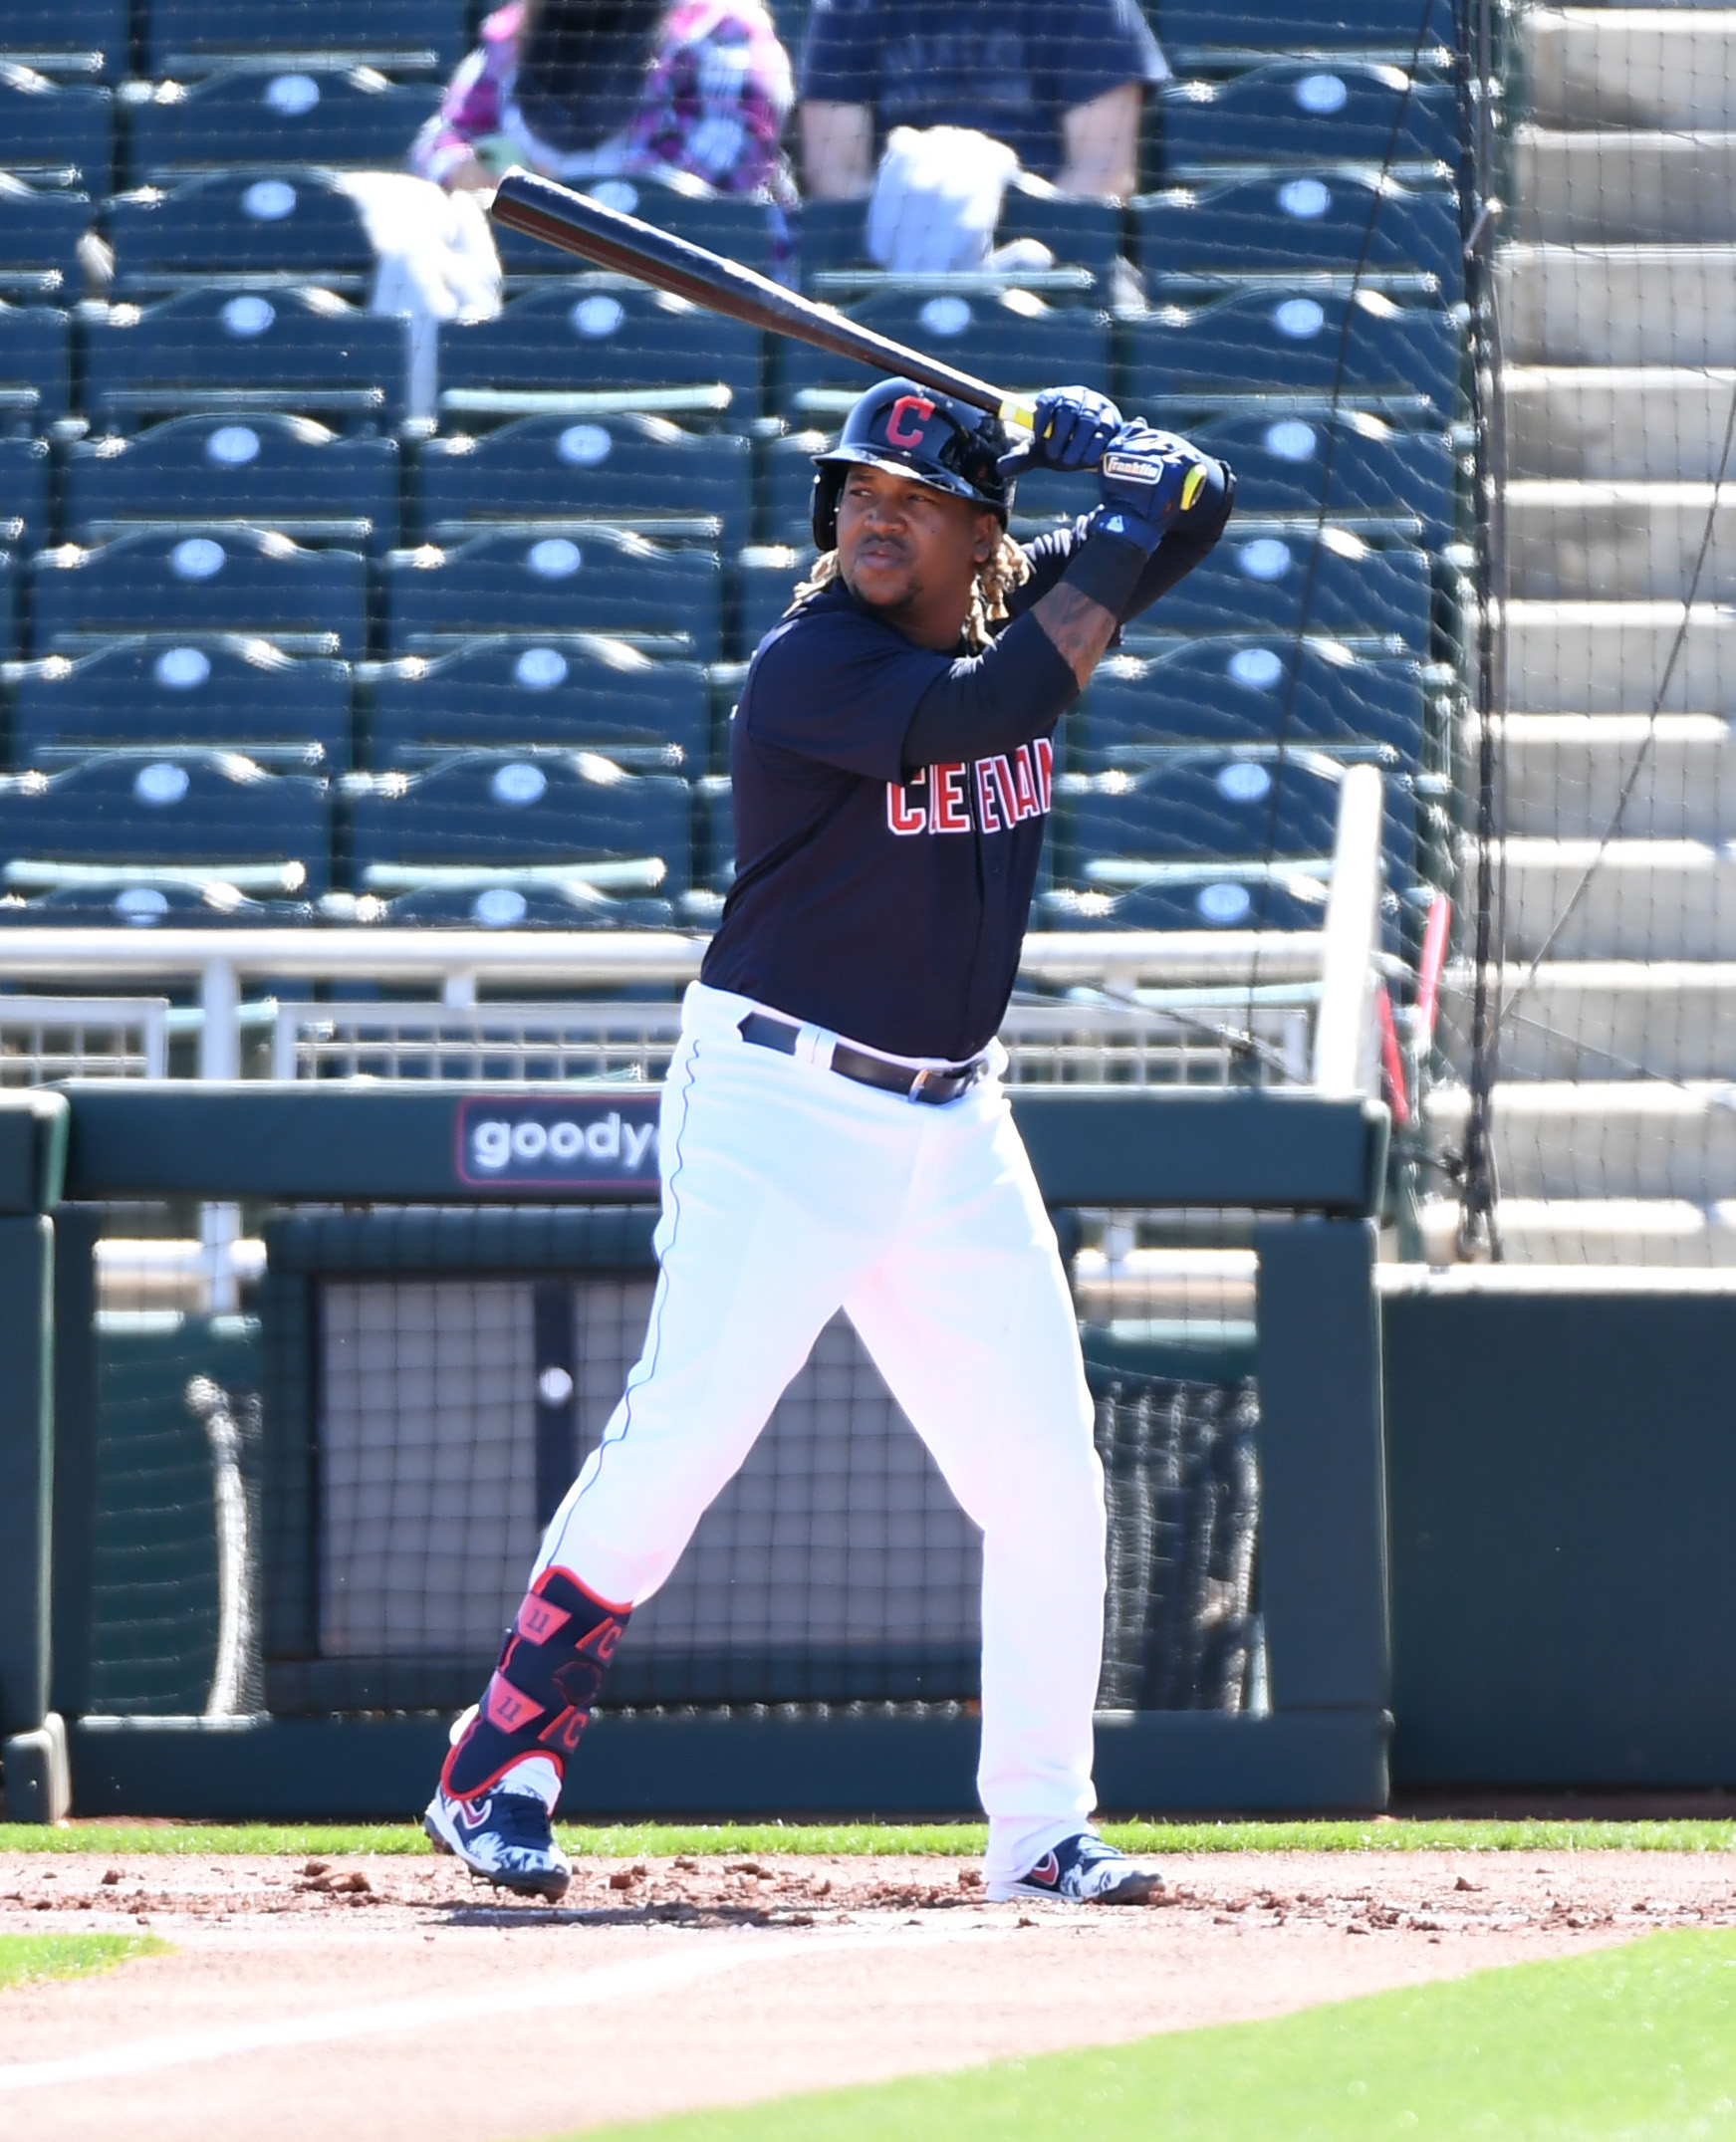 Jose Ramirez #11 of the Cleveland Indians gets ready in the batters box against the Kansas City Royals during a spring training game at Goodyear Ballpark on March 01, 2021 in Goodyear, Arizona.